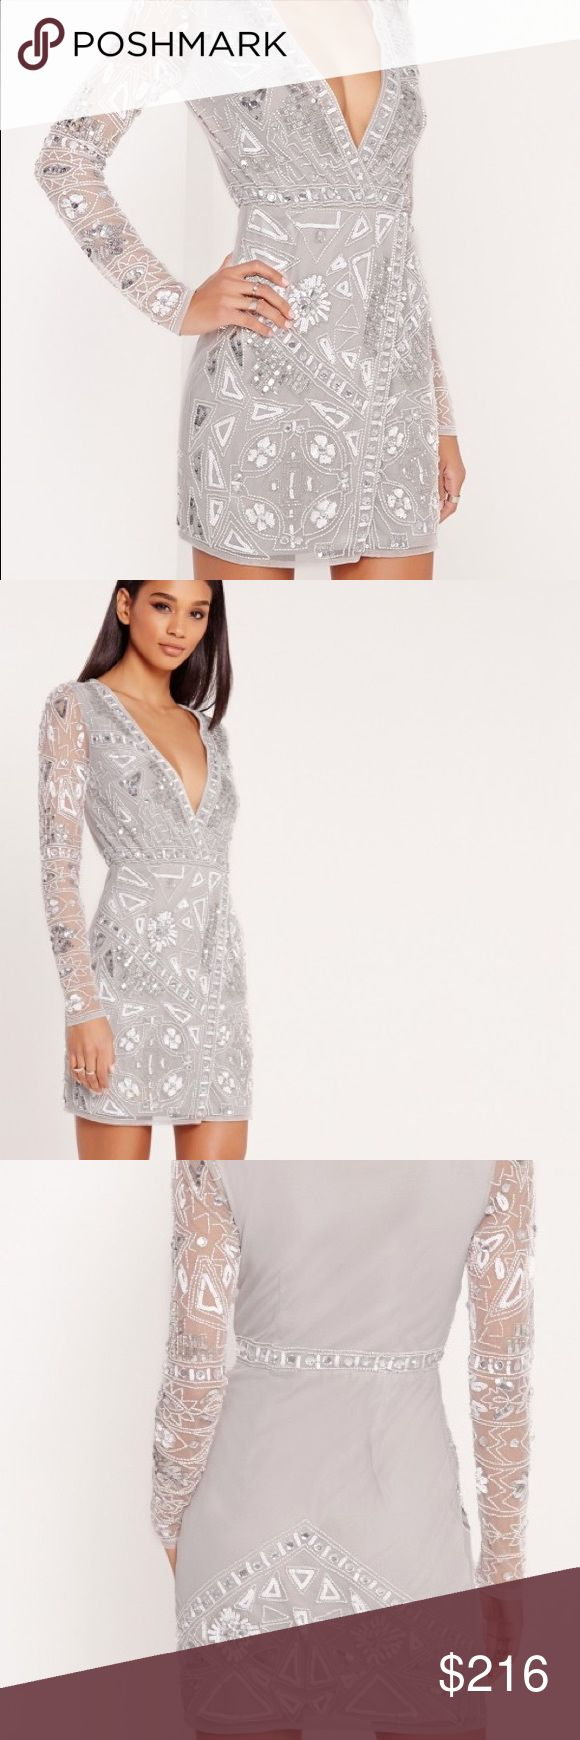 Long sleeve embellished wrap mini dress long sleeve mini dress. with stunning embellished detailing all over and to the back, this mesh overlay beaut is a must for weddings and events. be centre of attention and shine amongst the rest! with hints of grey, silver and white, this wrap over dress comes with a plunging neckline and discrete zip to the side. team up with silver court shoes and a matching clutch and all eyes will be on you! Missguided Dresses Mini